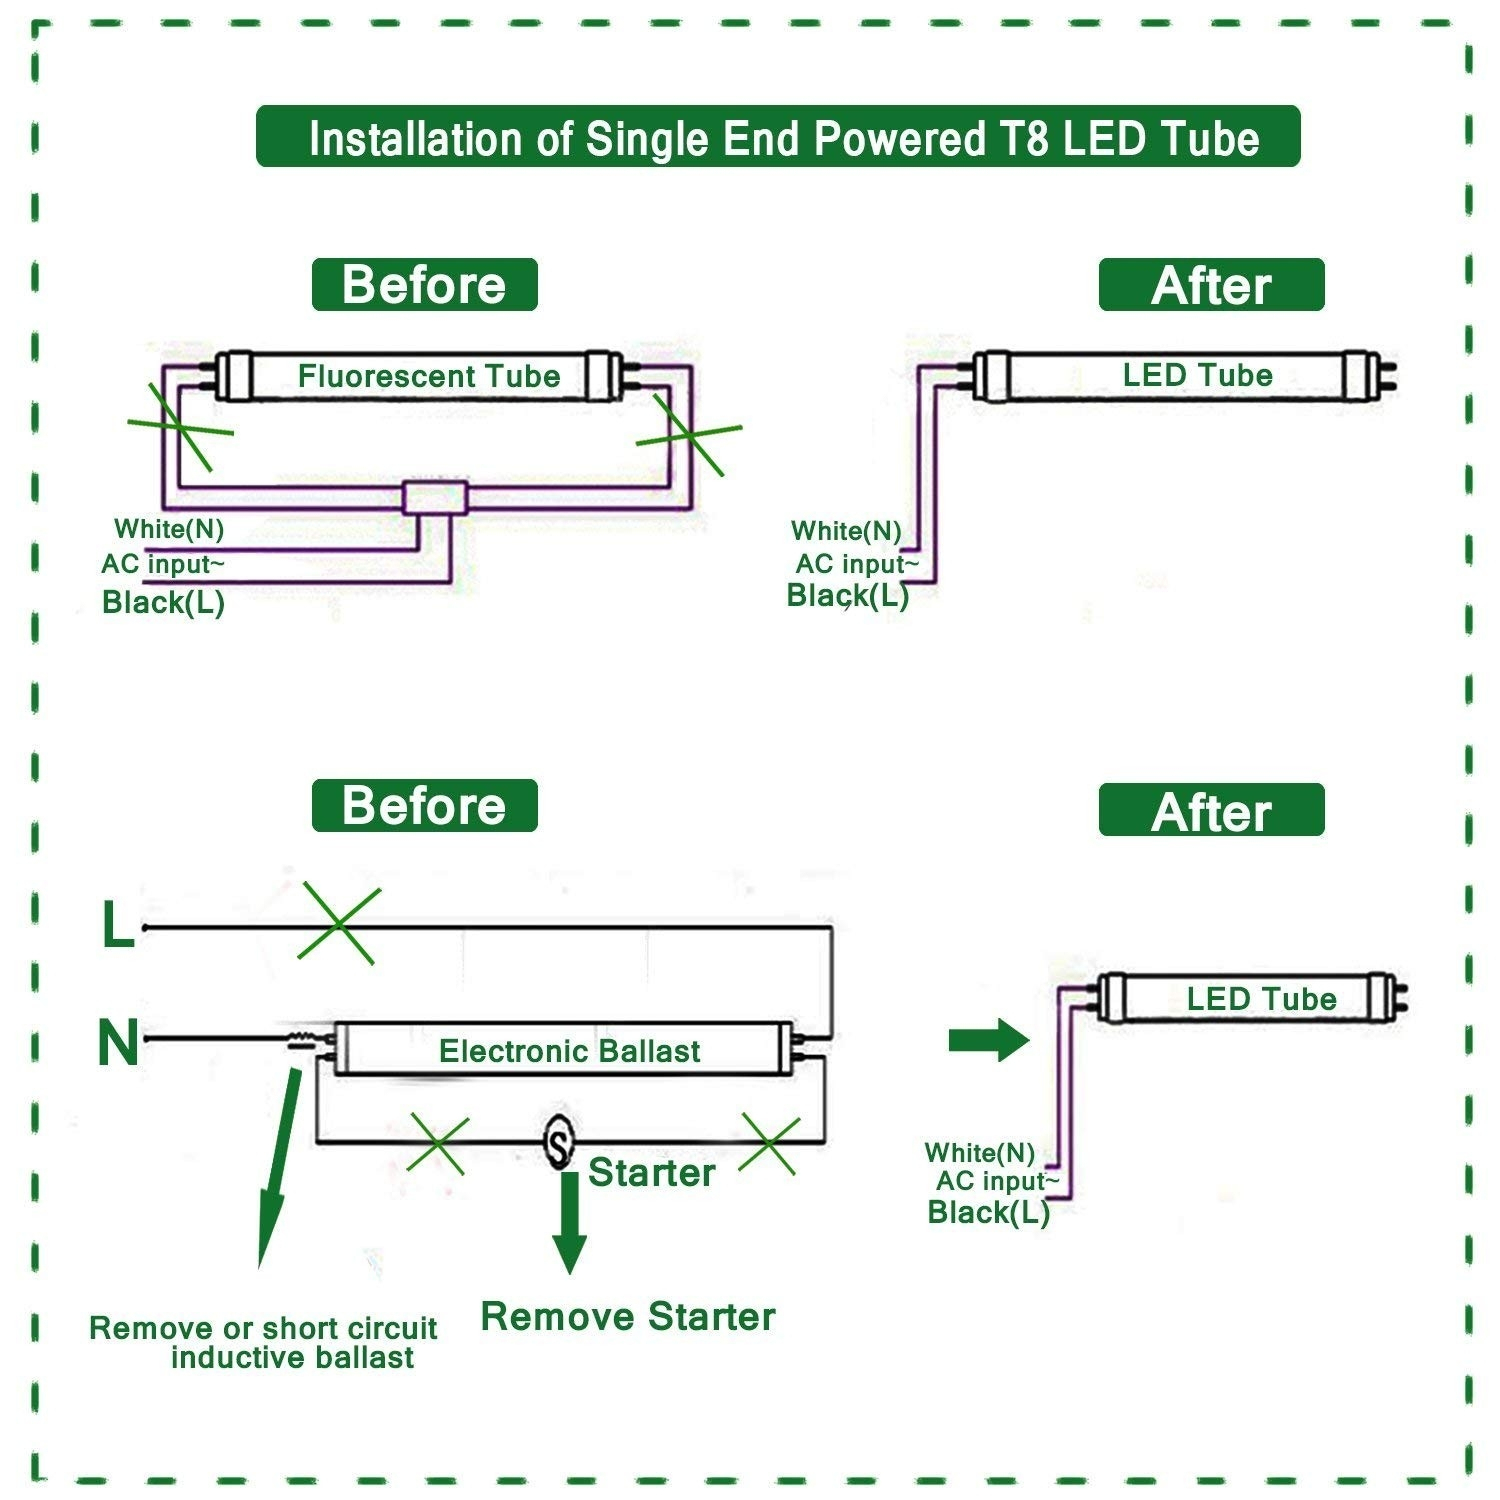 T8 Led Tube Wiring Diagram | Manual E-Books - Wiring Diagram For Led Tube Lights